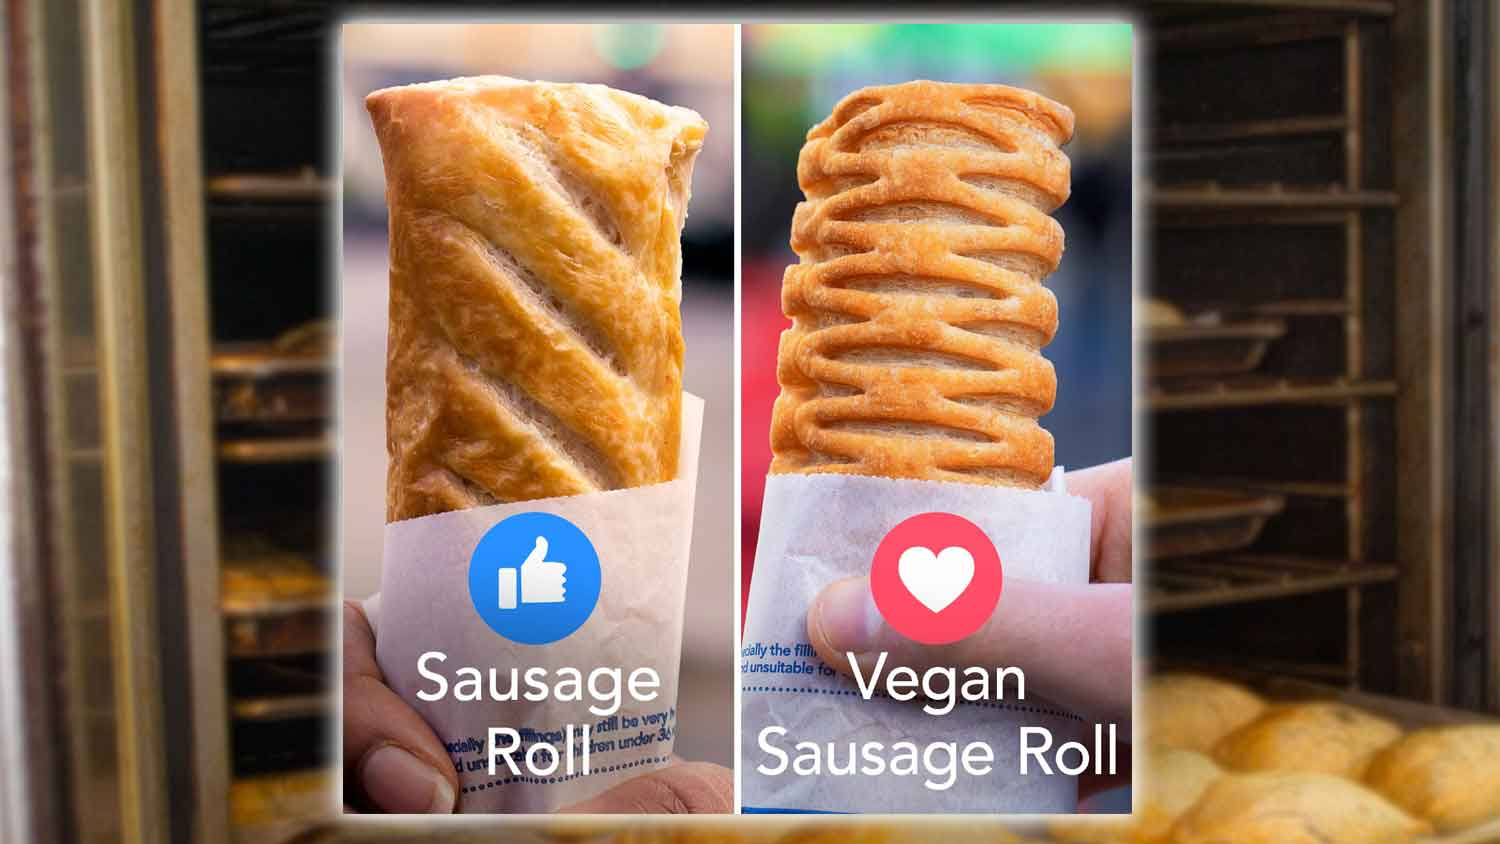 People Love Greggs Vegan Sausage Roll More Than the Original